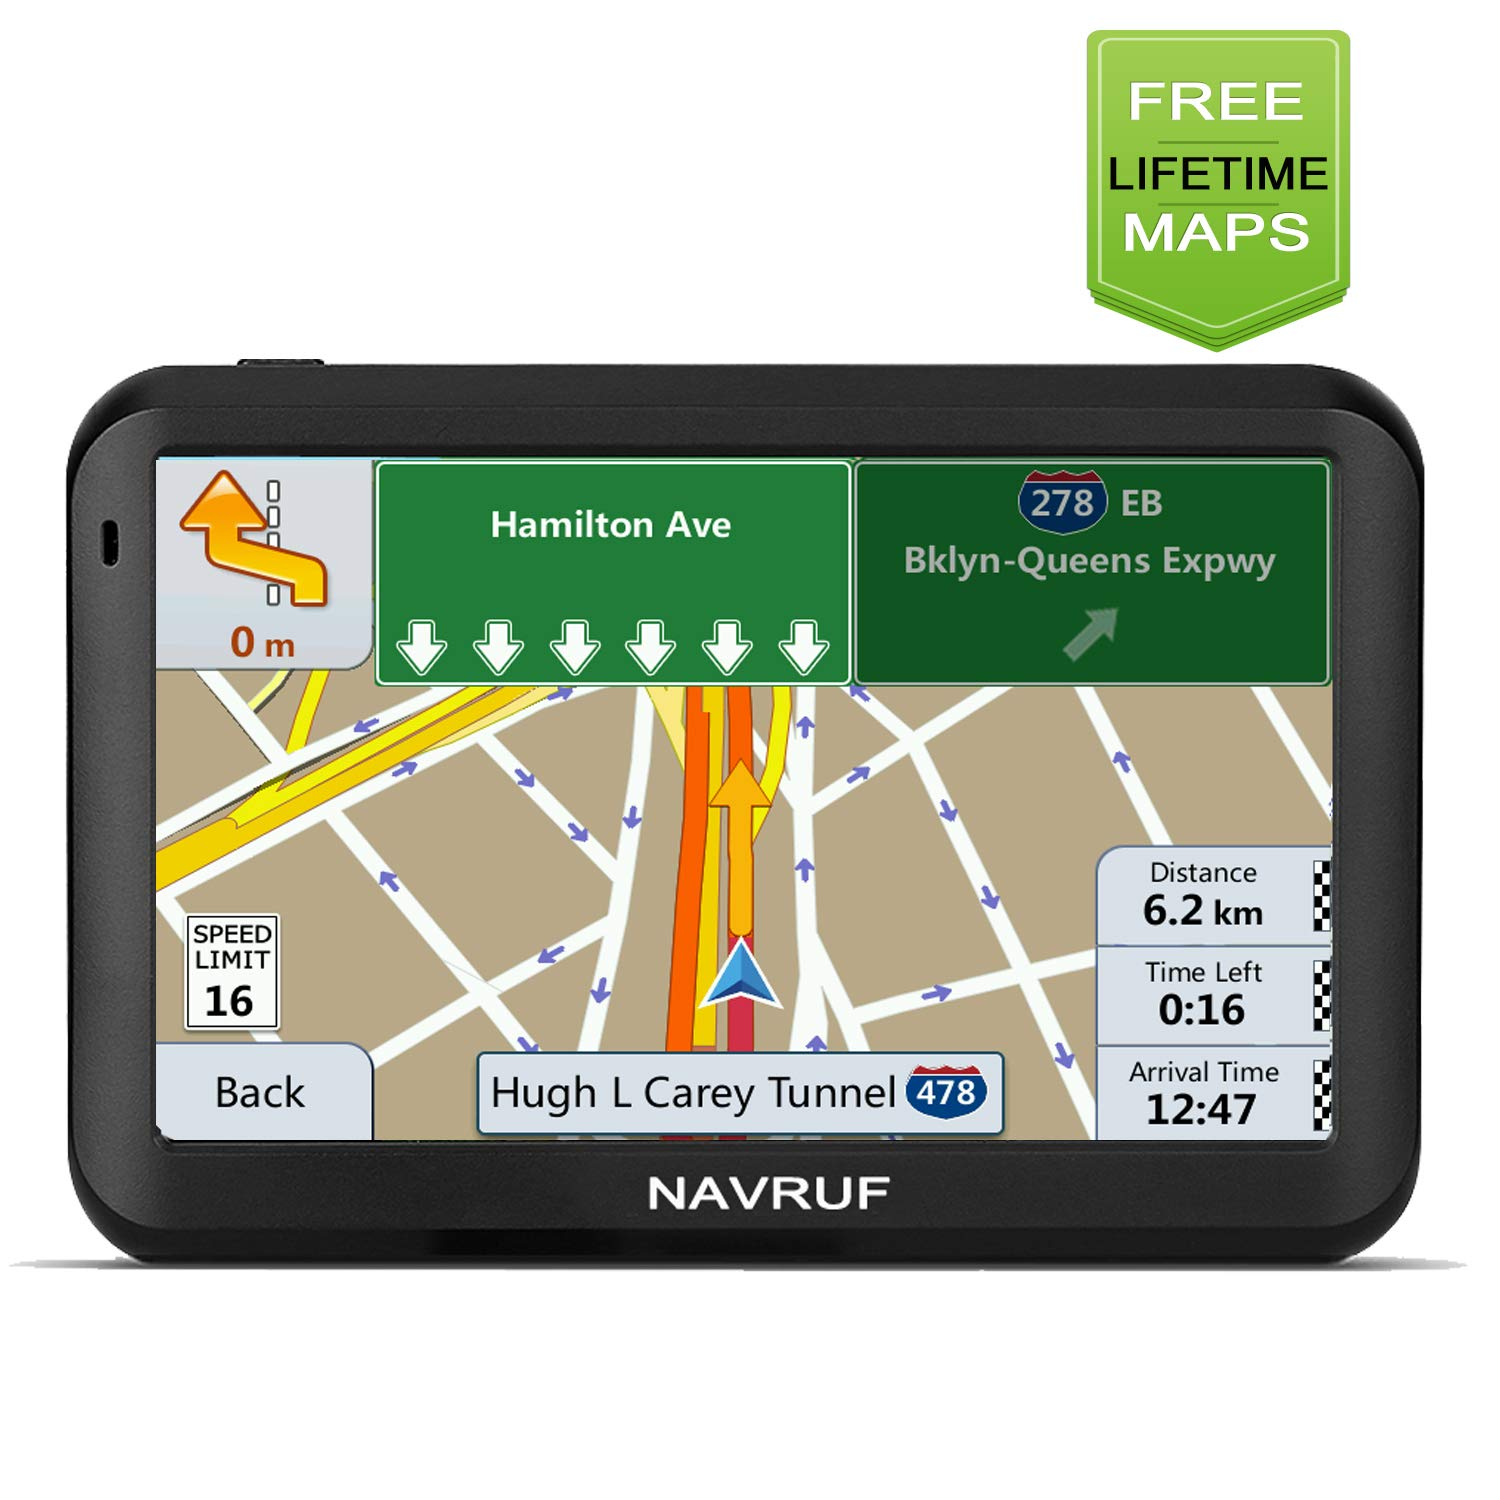 NAVRUF Car GPS Navigation+Latest Maps,Spoken Turn- to-Turn Traffic Alert Vehicle GPS Navigation System, 5-inch 8GB with Sun Visor& Free Lifetime Traffic